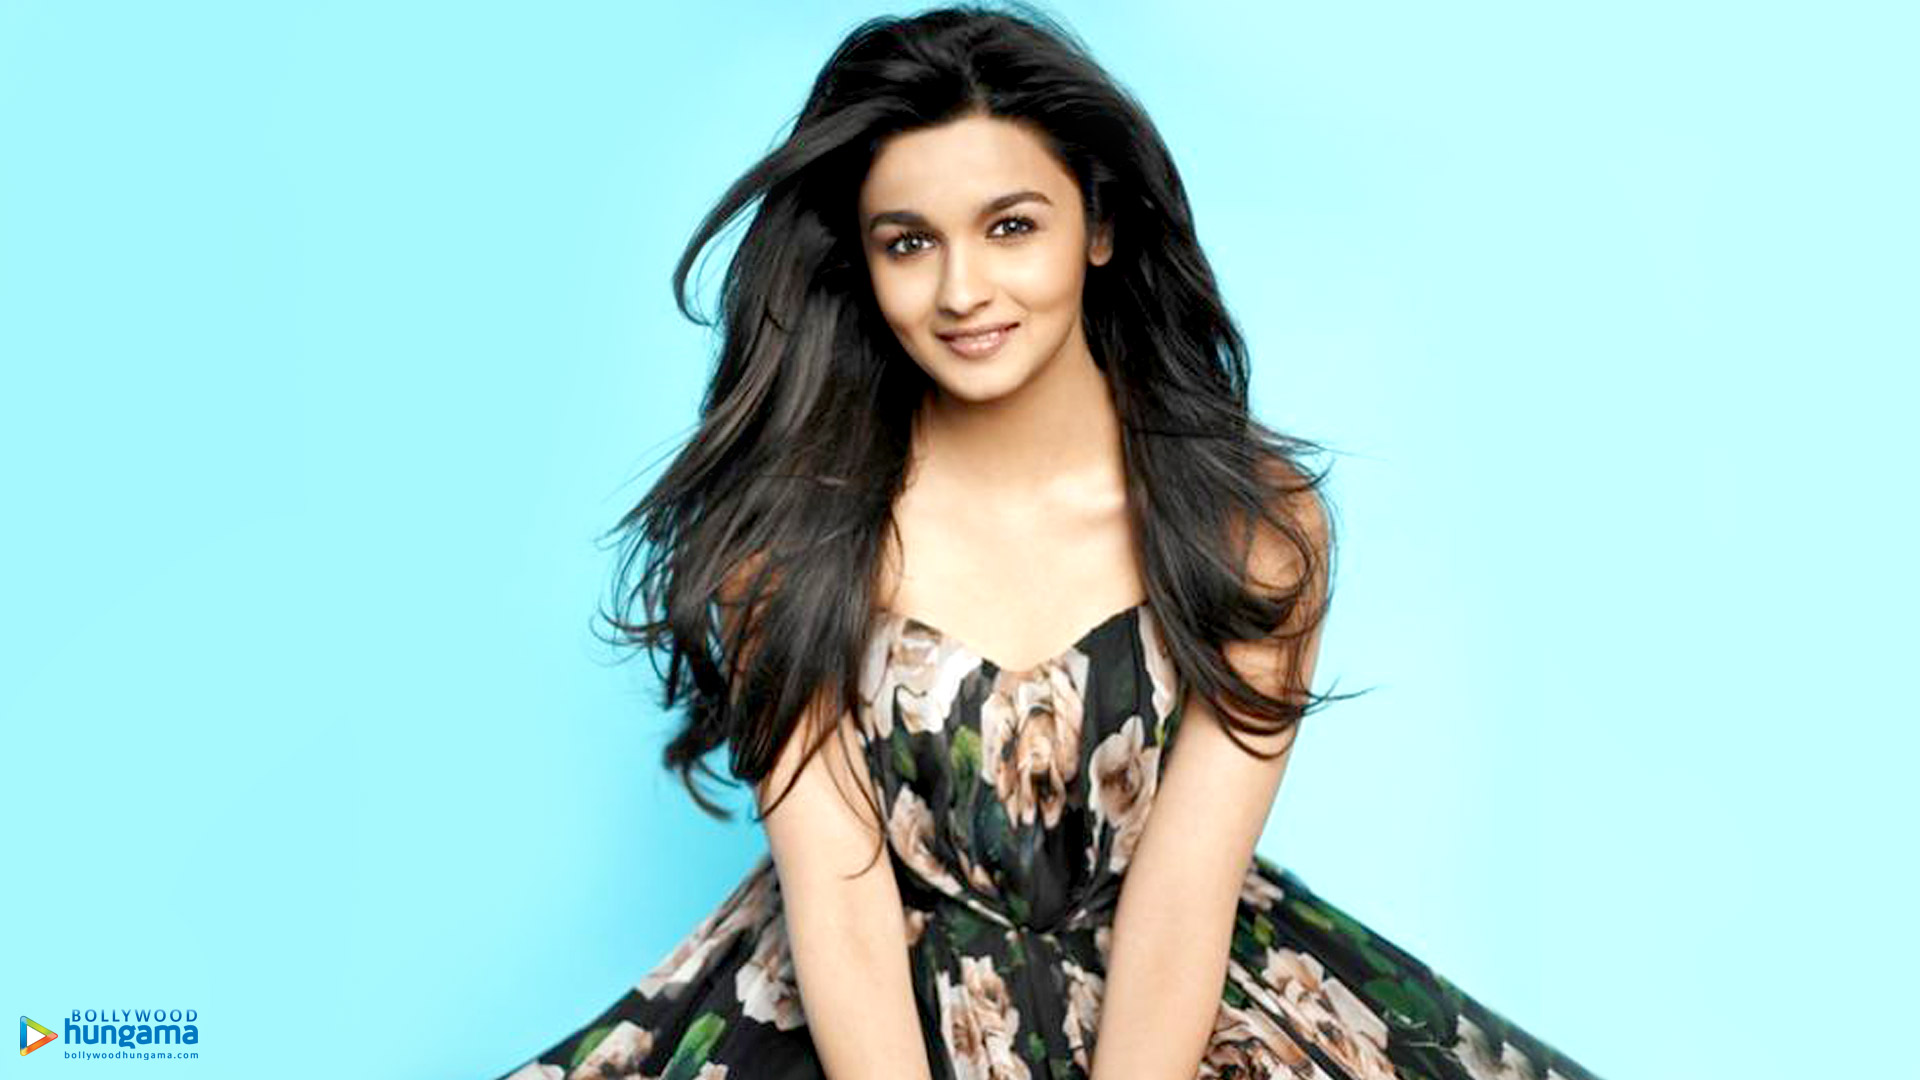 alia bhatt wallpapers | alia-bhatt-6 - bollywood hungama